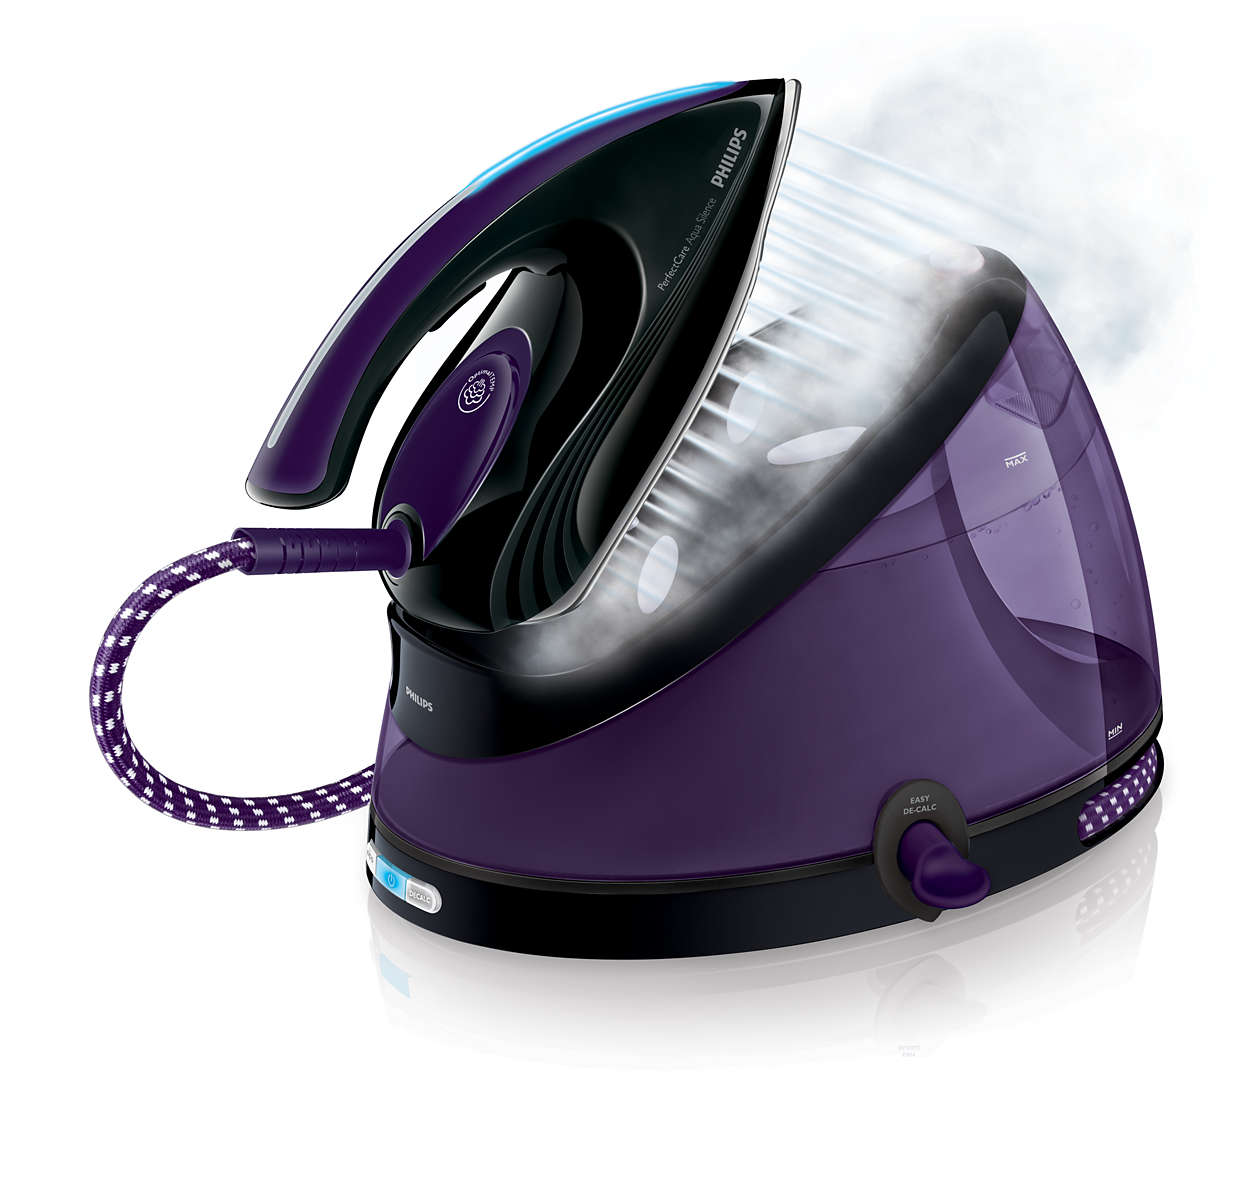 perfectcare aqua silence steam generator iron gc8650 80. Black Bedroom Furniture Sets. Home Design Ideas